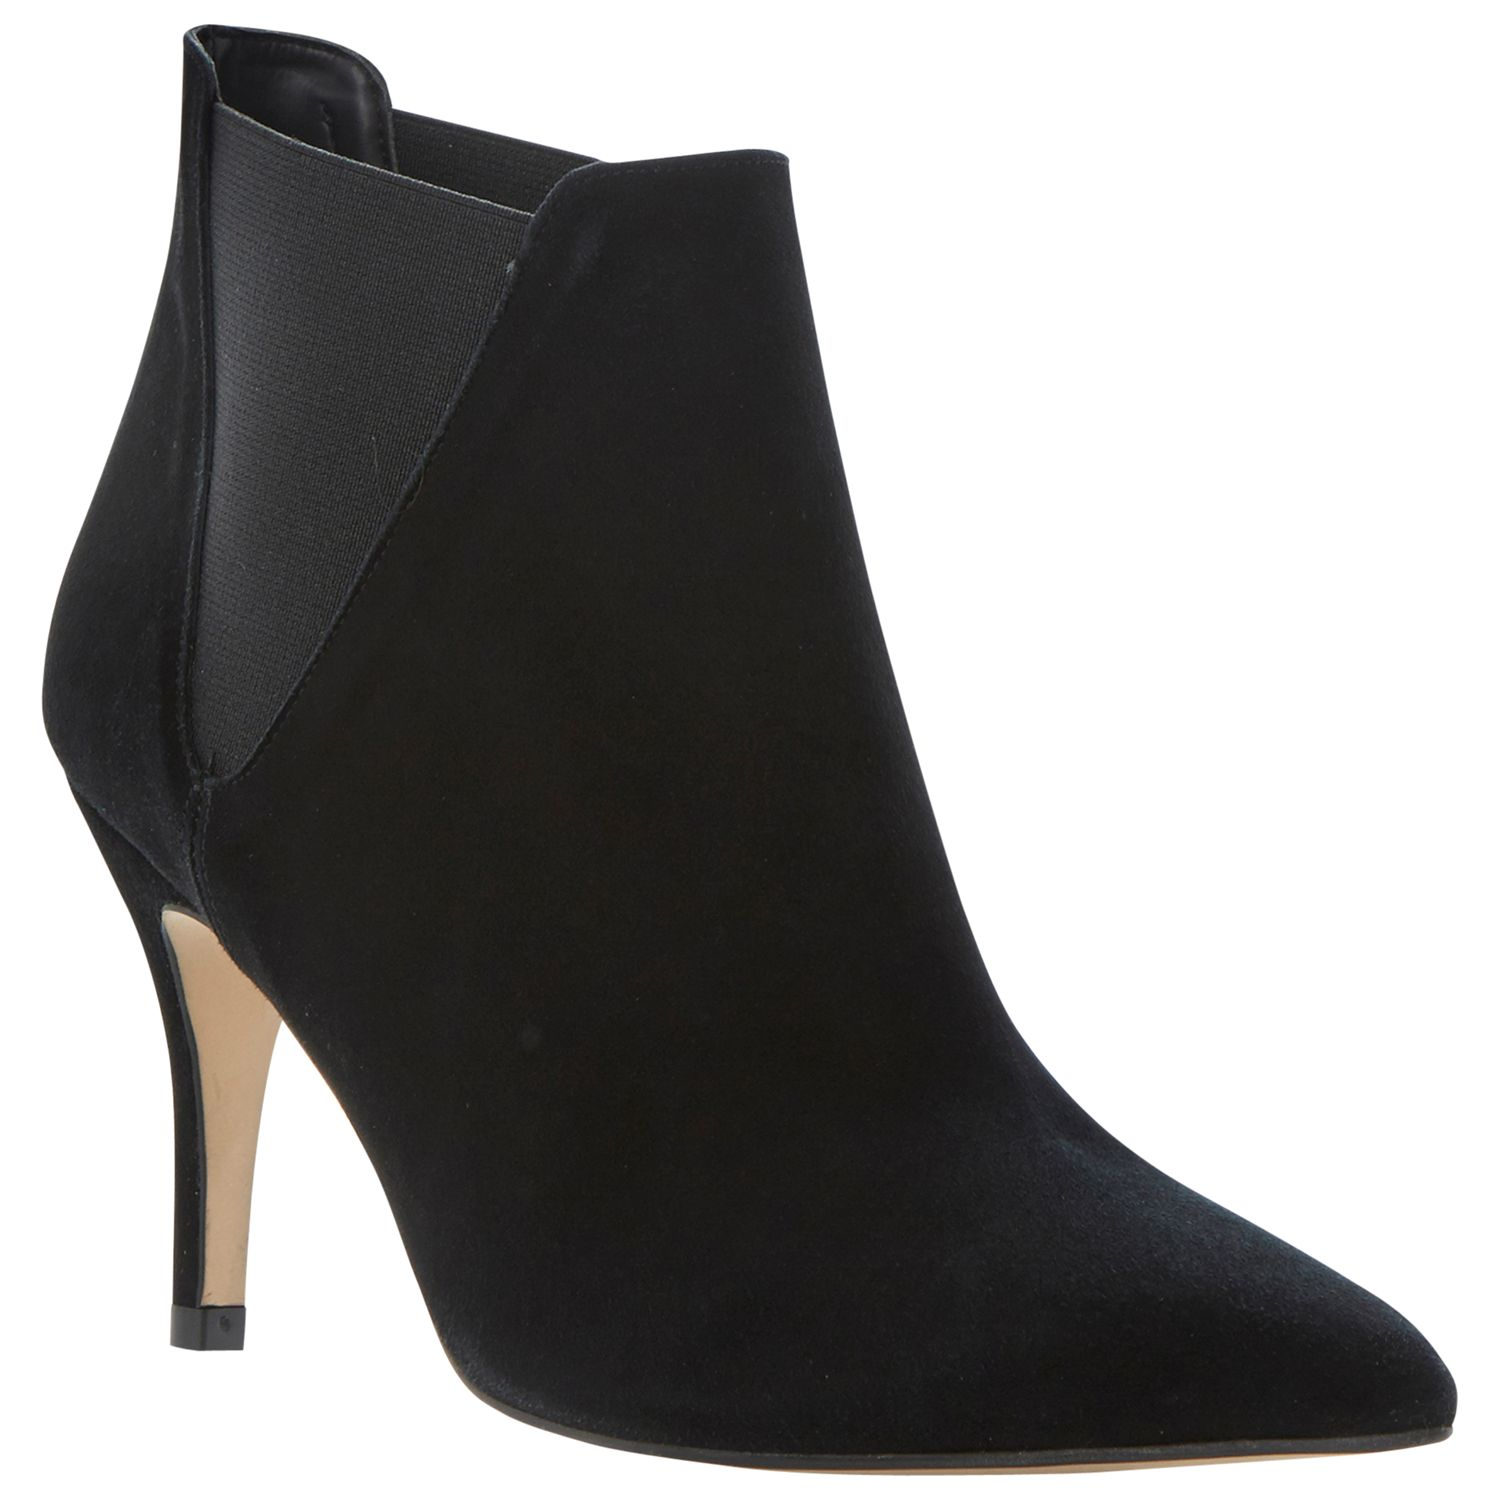 Dune Nightfall Suede Ankle Boots, Black